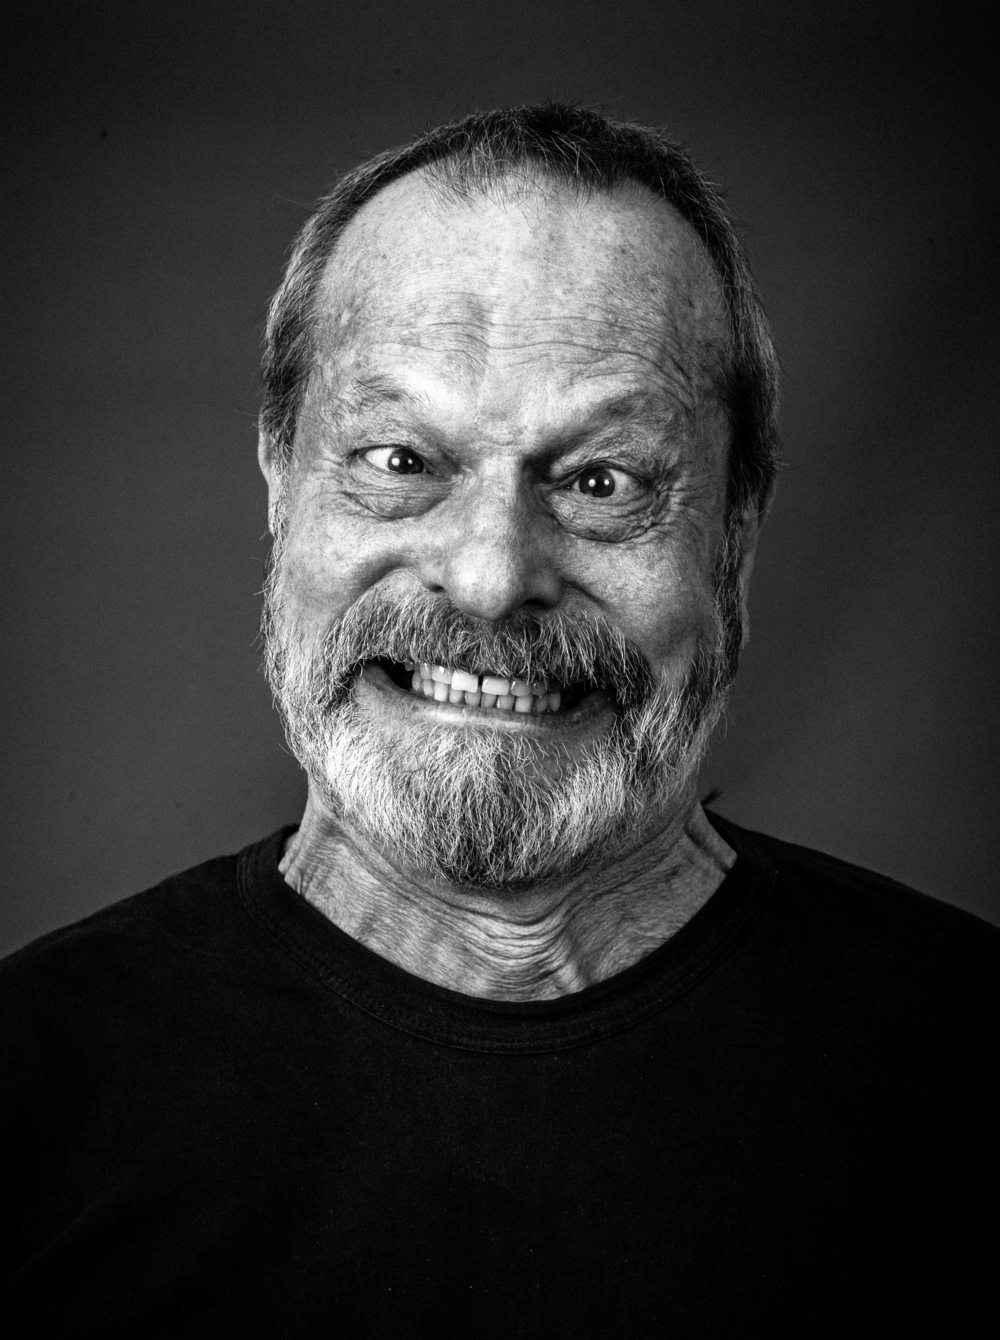 My emotions provoked & described by this guy. Ladies and gentleman, Terry Gilliam. [photo source: Time Out]